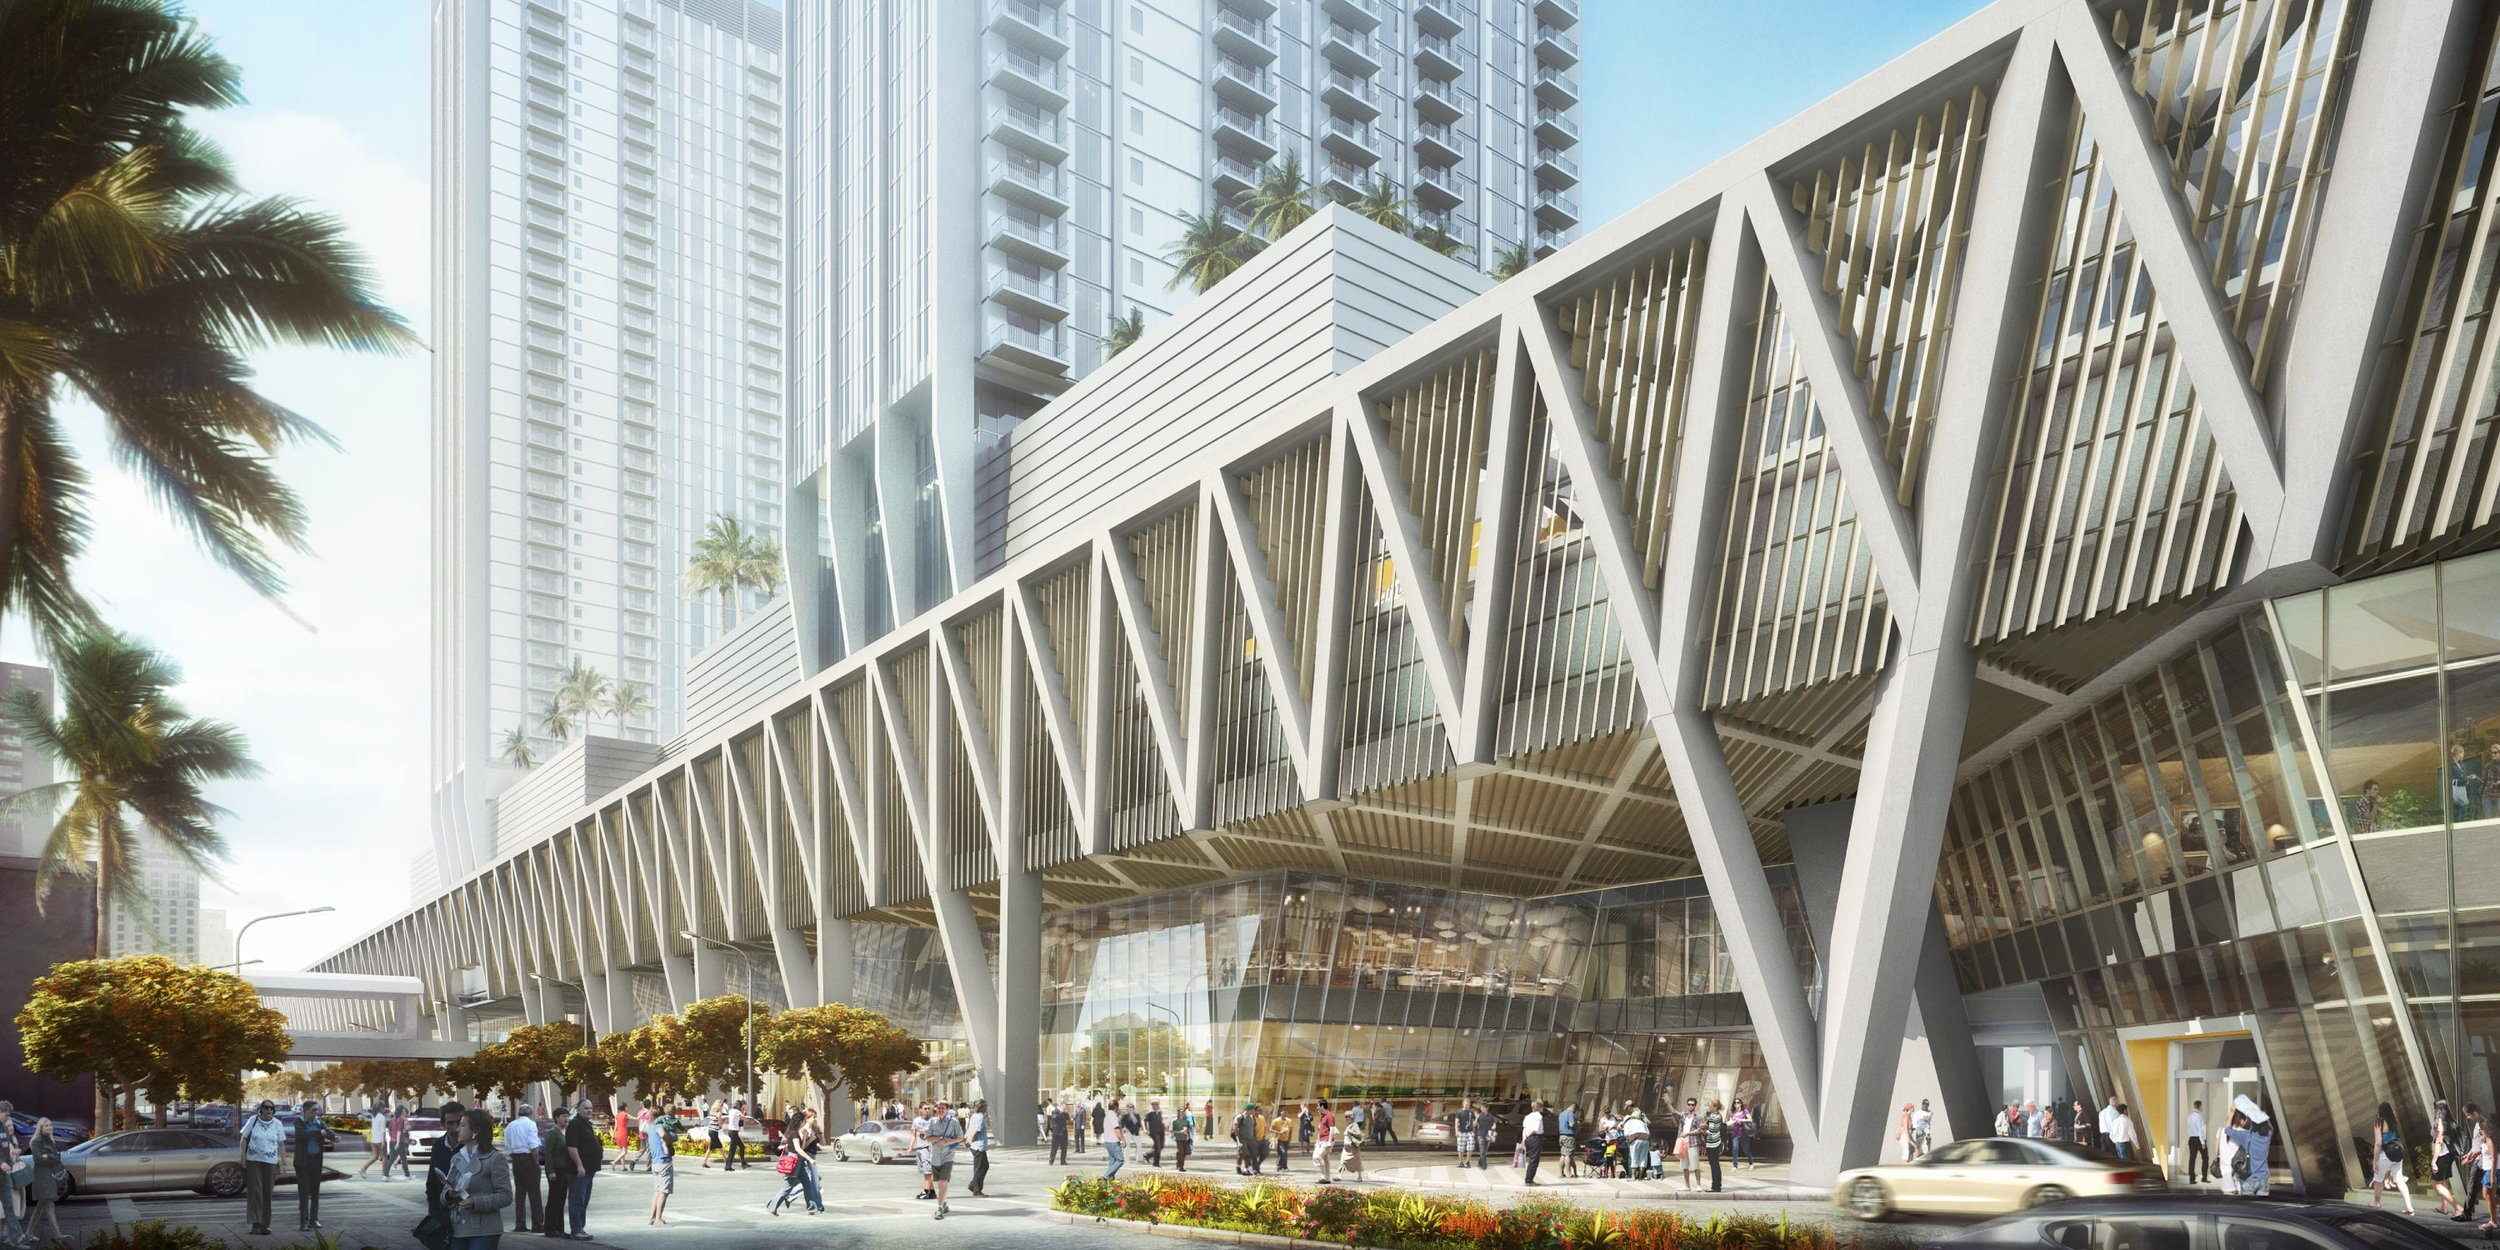 MiamiCentral Featuring Brightline Tabs Tony Cho's Metro 1 Commercial As Exclusive Retail Brokerage For Development